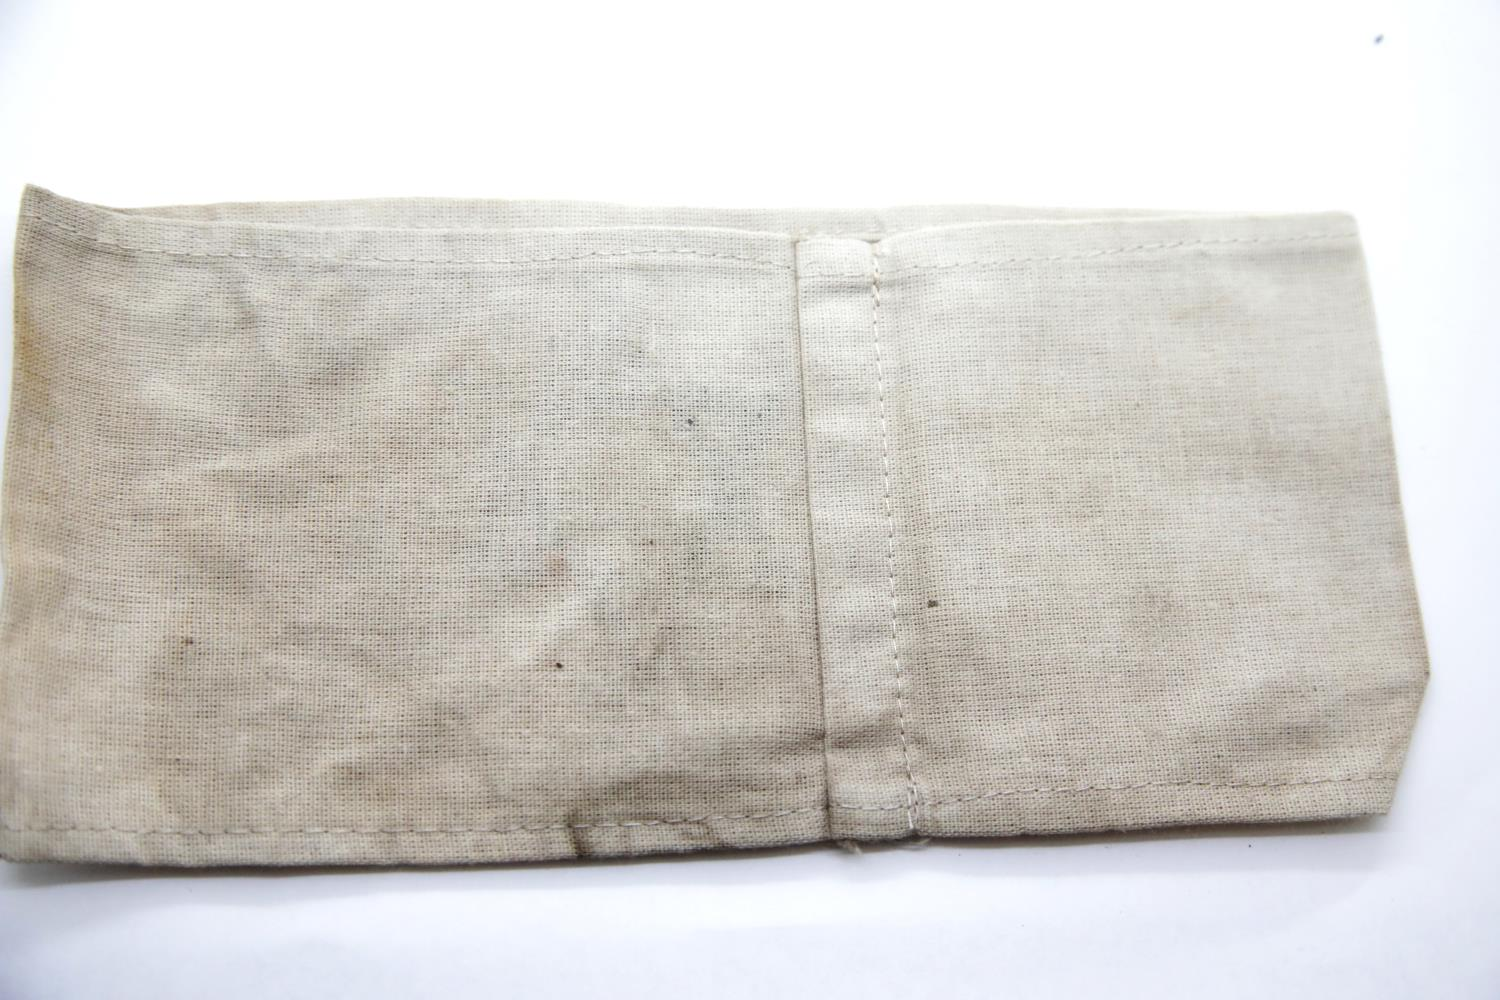 Lot 3059 - WWII type Jewish armband. P&P Group 1 (£14+VAT for the first lot and £1+VAT for subsequent lots)